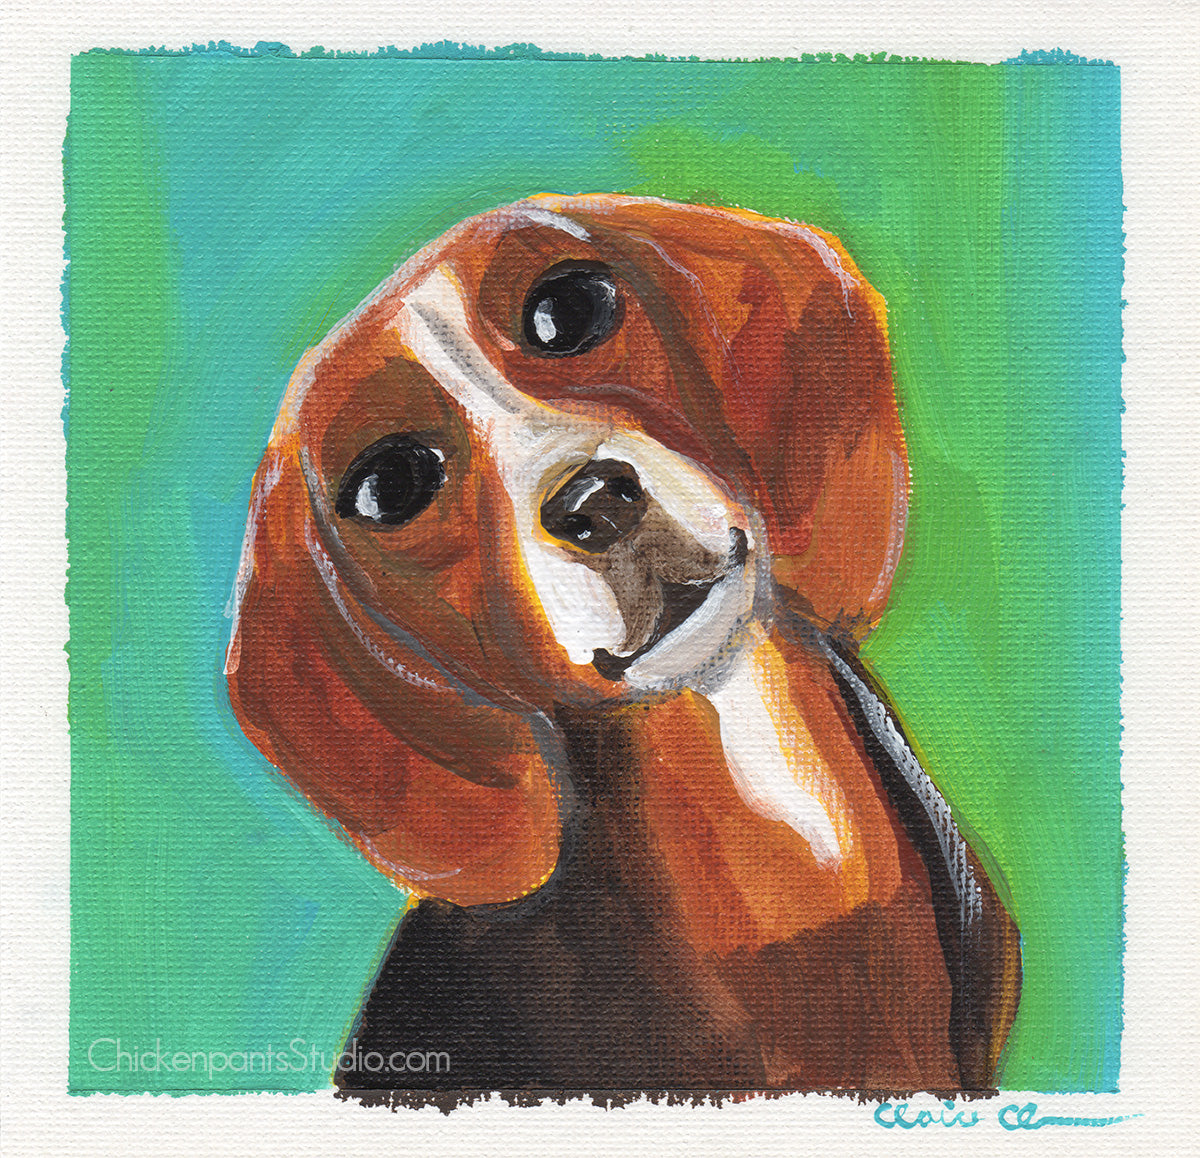 It's Beagle Time - Original Beagle Painting